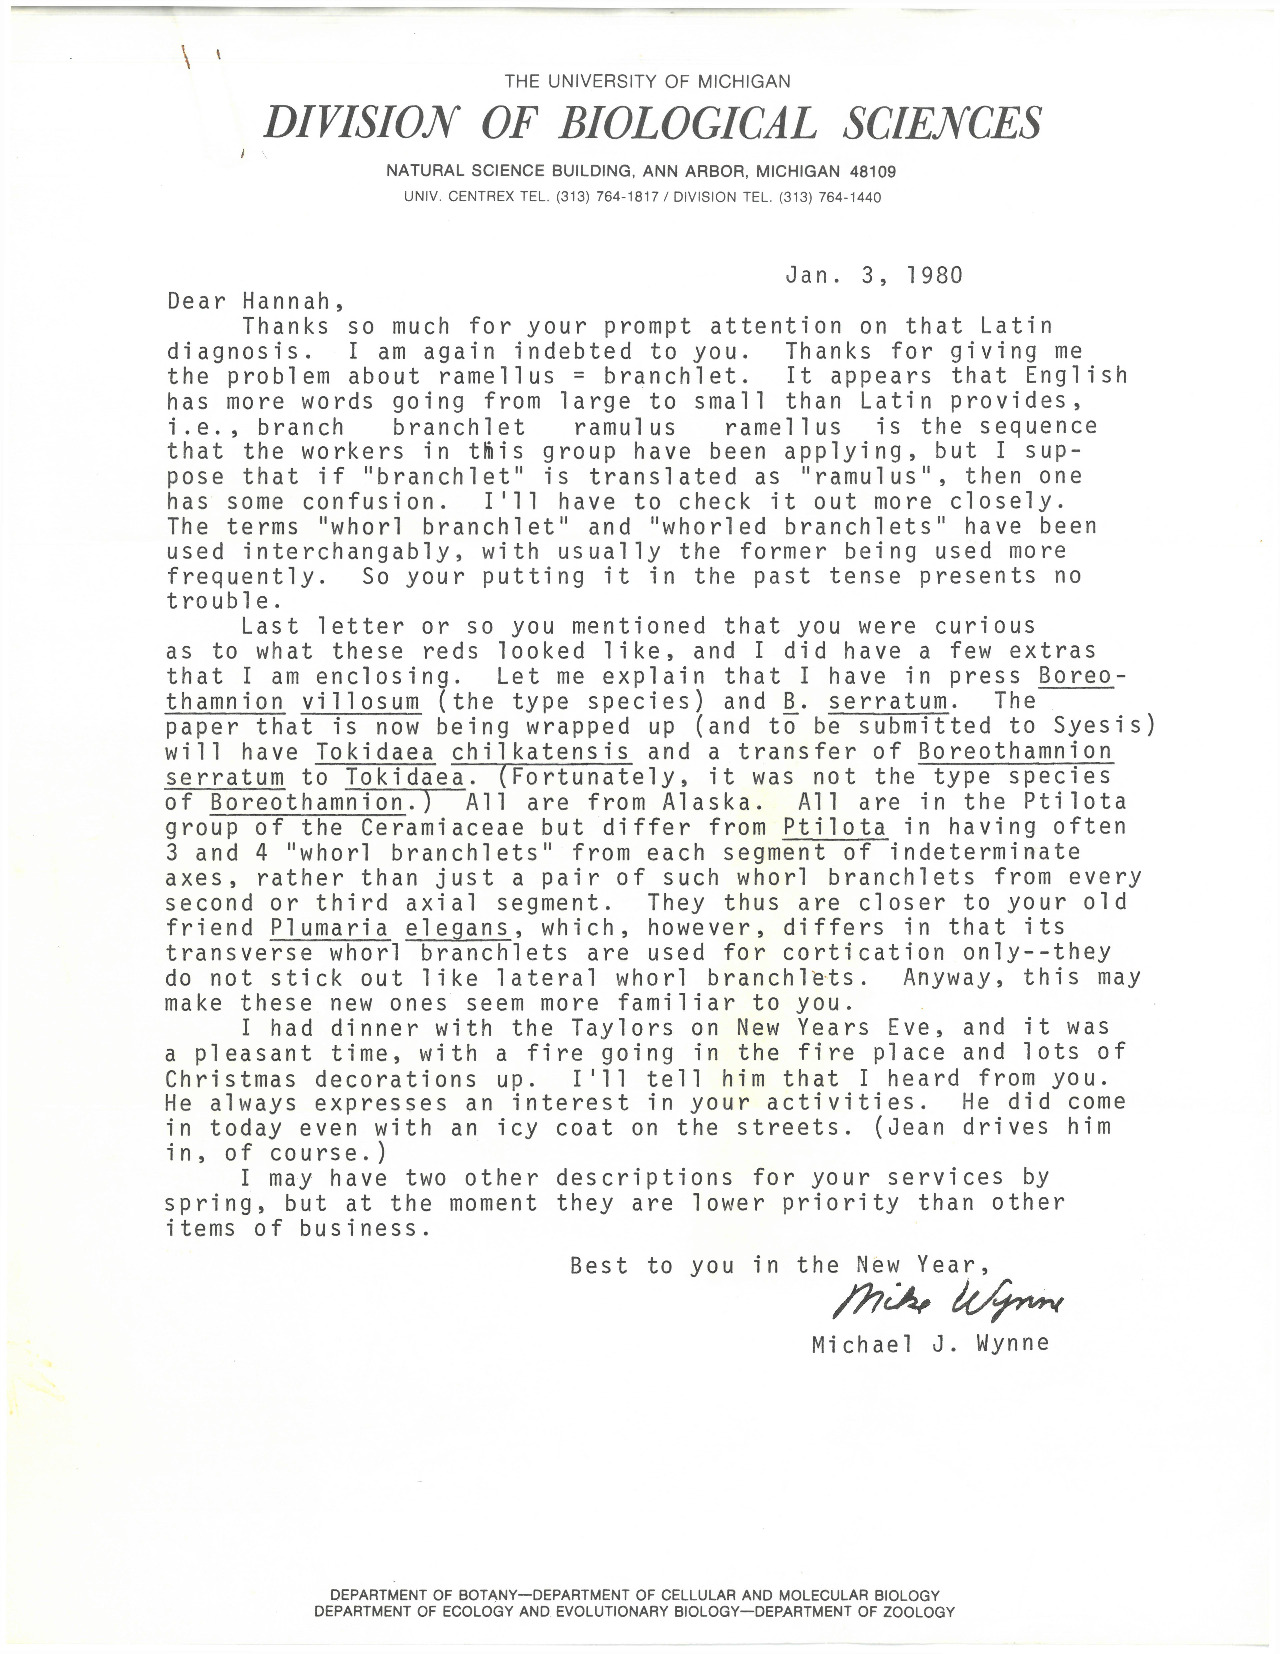 """A letter from Michael Wynne of the University of Michigan writes to Prof. Croasdale thanking her for her assistance with naming a specimen using scientific Latin, a language that Croasdale had taught herself. He encloses some of his samples for her reference, and concludes with remarks about a mutual friend who """"always expresses an interest in your activities."""" This letter serves as an excellent example that Croasdale was well-known domestically in the field of phycology and naming in scientific Latin."""